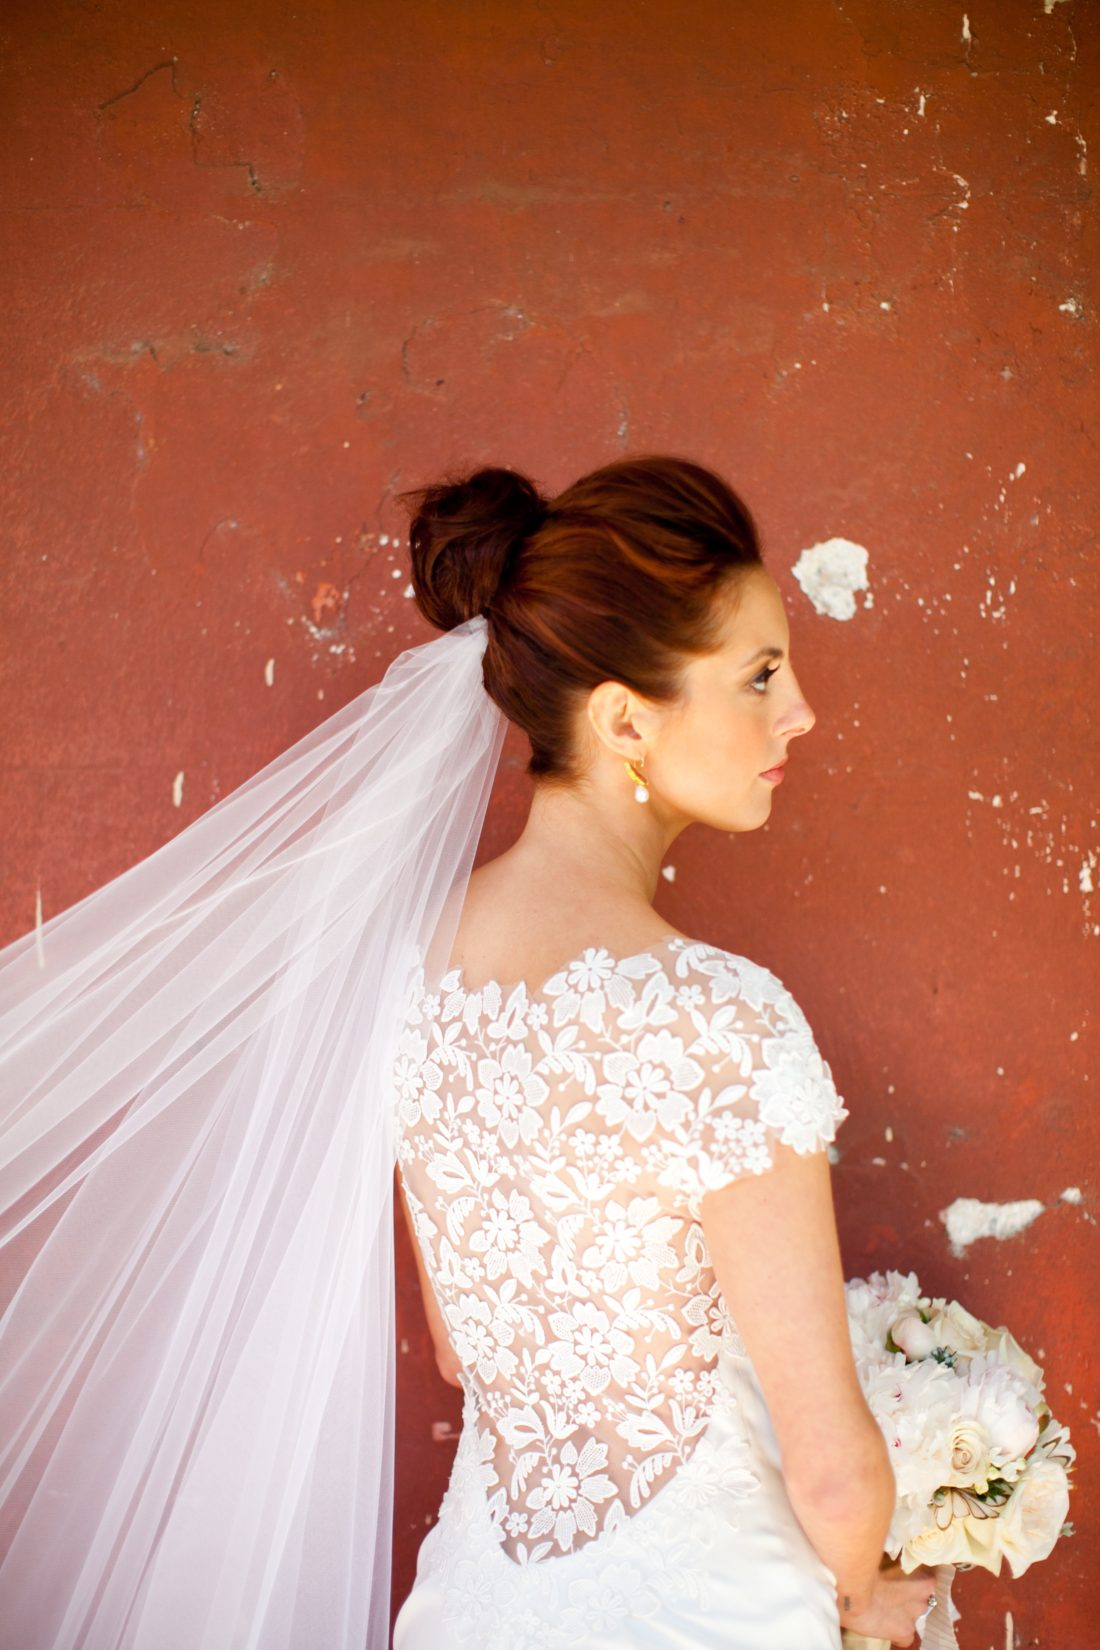 Eva Amurri Martino of lifestyle and motherhood blog Happily Eva After, pictured on her wedding day in 2011 wearing a lela rose wedding dress with flower applique detail on the back, holding a white and blush bouquet